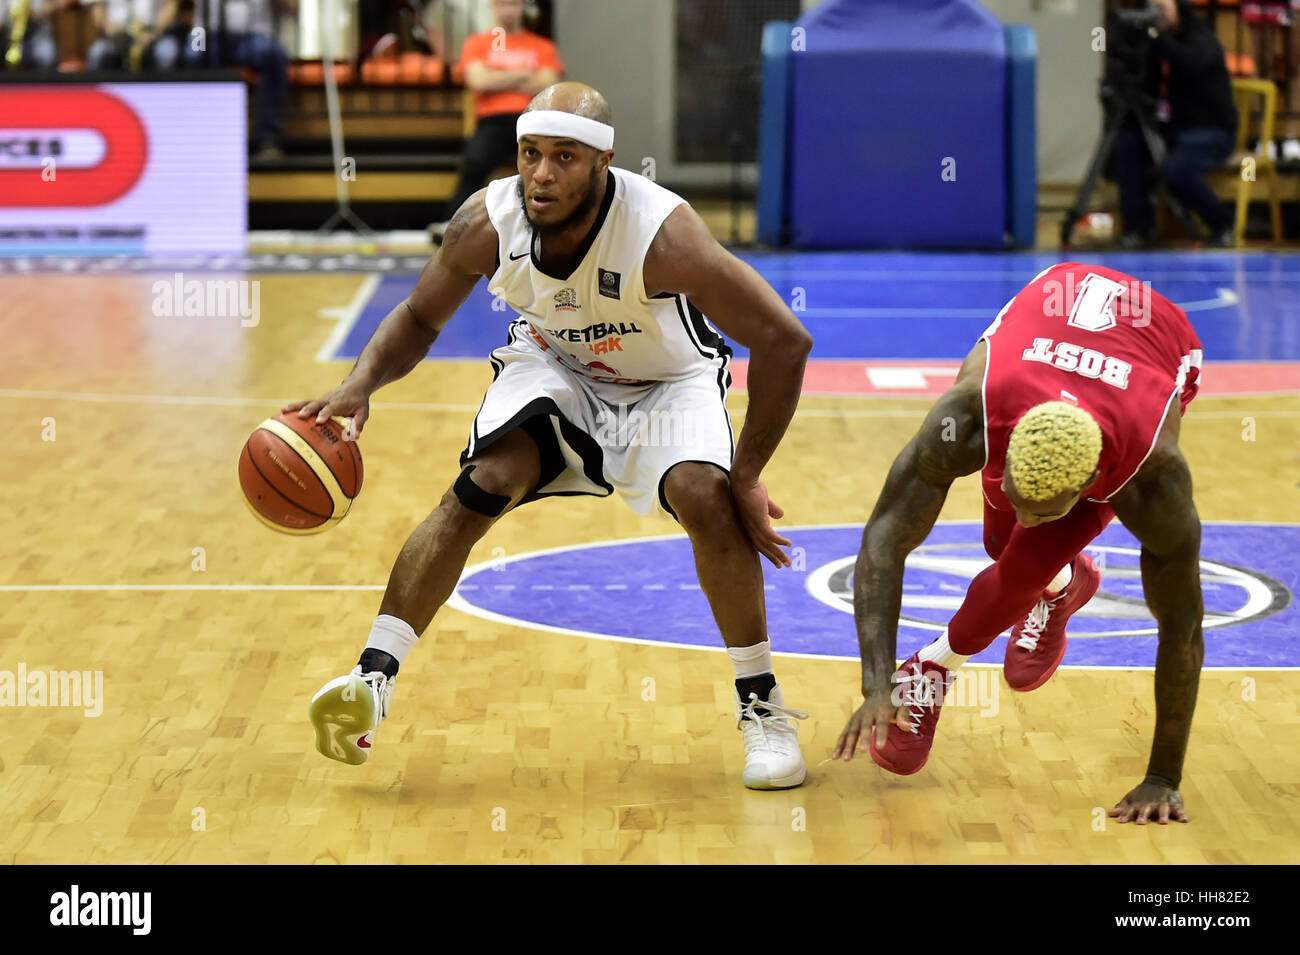 Nymburk, Czech Republic. 17th Jan, 2017. From left EUGENE LAWRENCE of Nymburk and DEE BOST of Monaco in action during - Stock Image